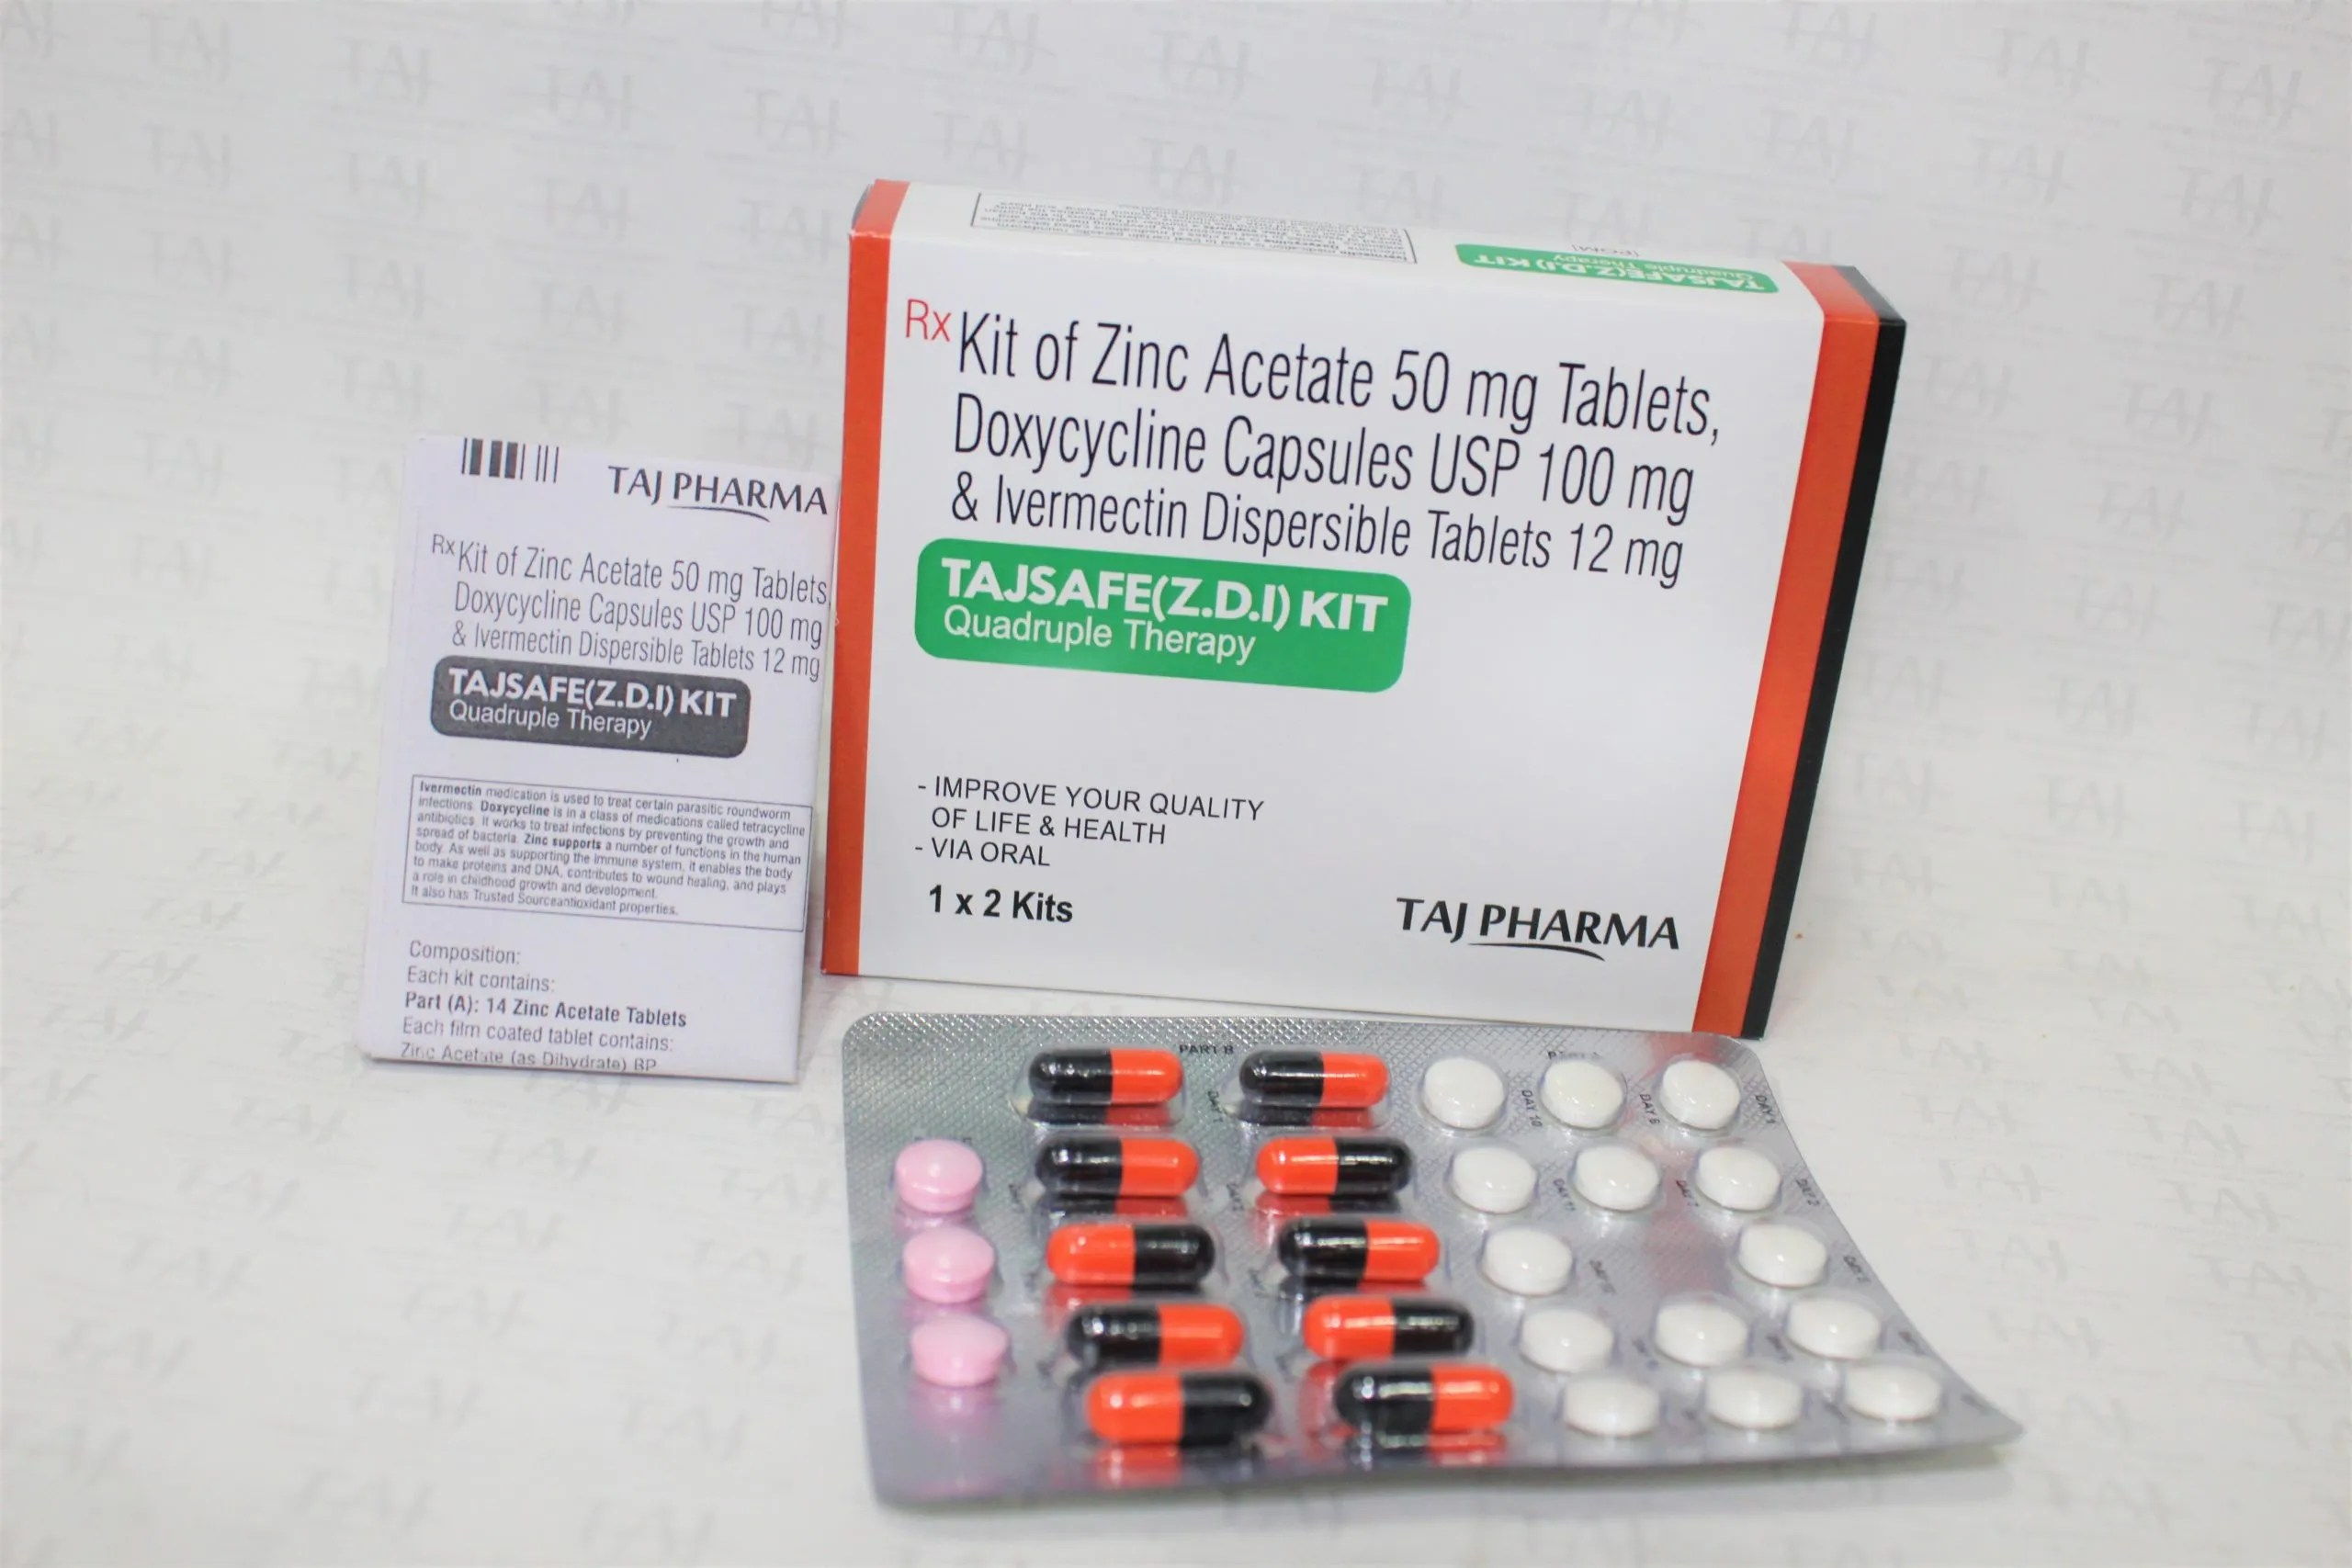 Taj Covi Safe Kit Contains Zinc Acetate 50 mg, Doxycycline 100 mg & Ivermectin 12 mg Dispersible Tablets